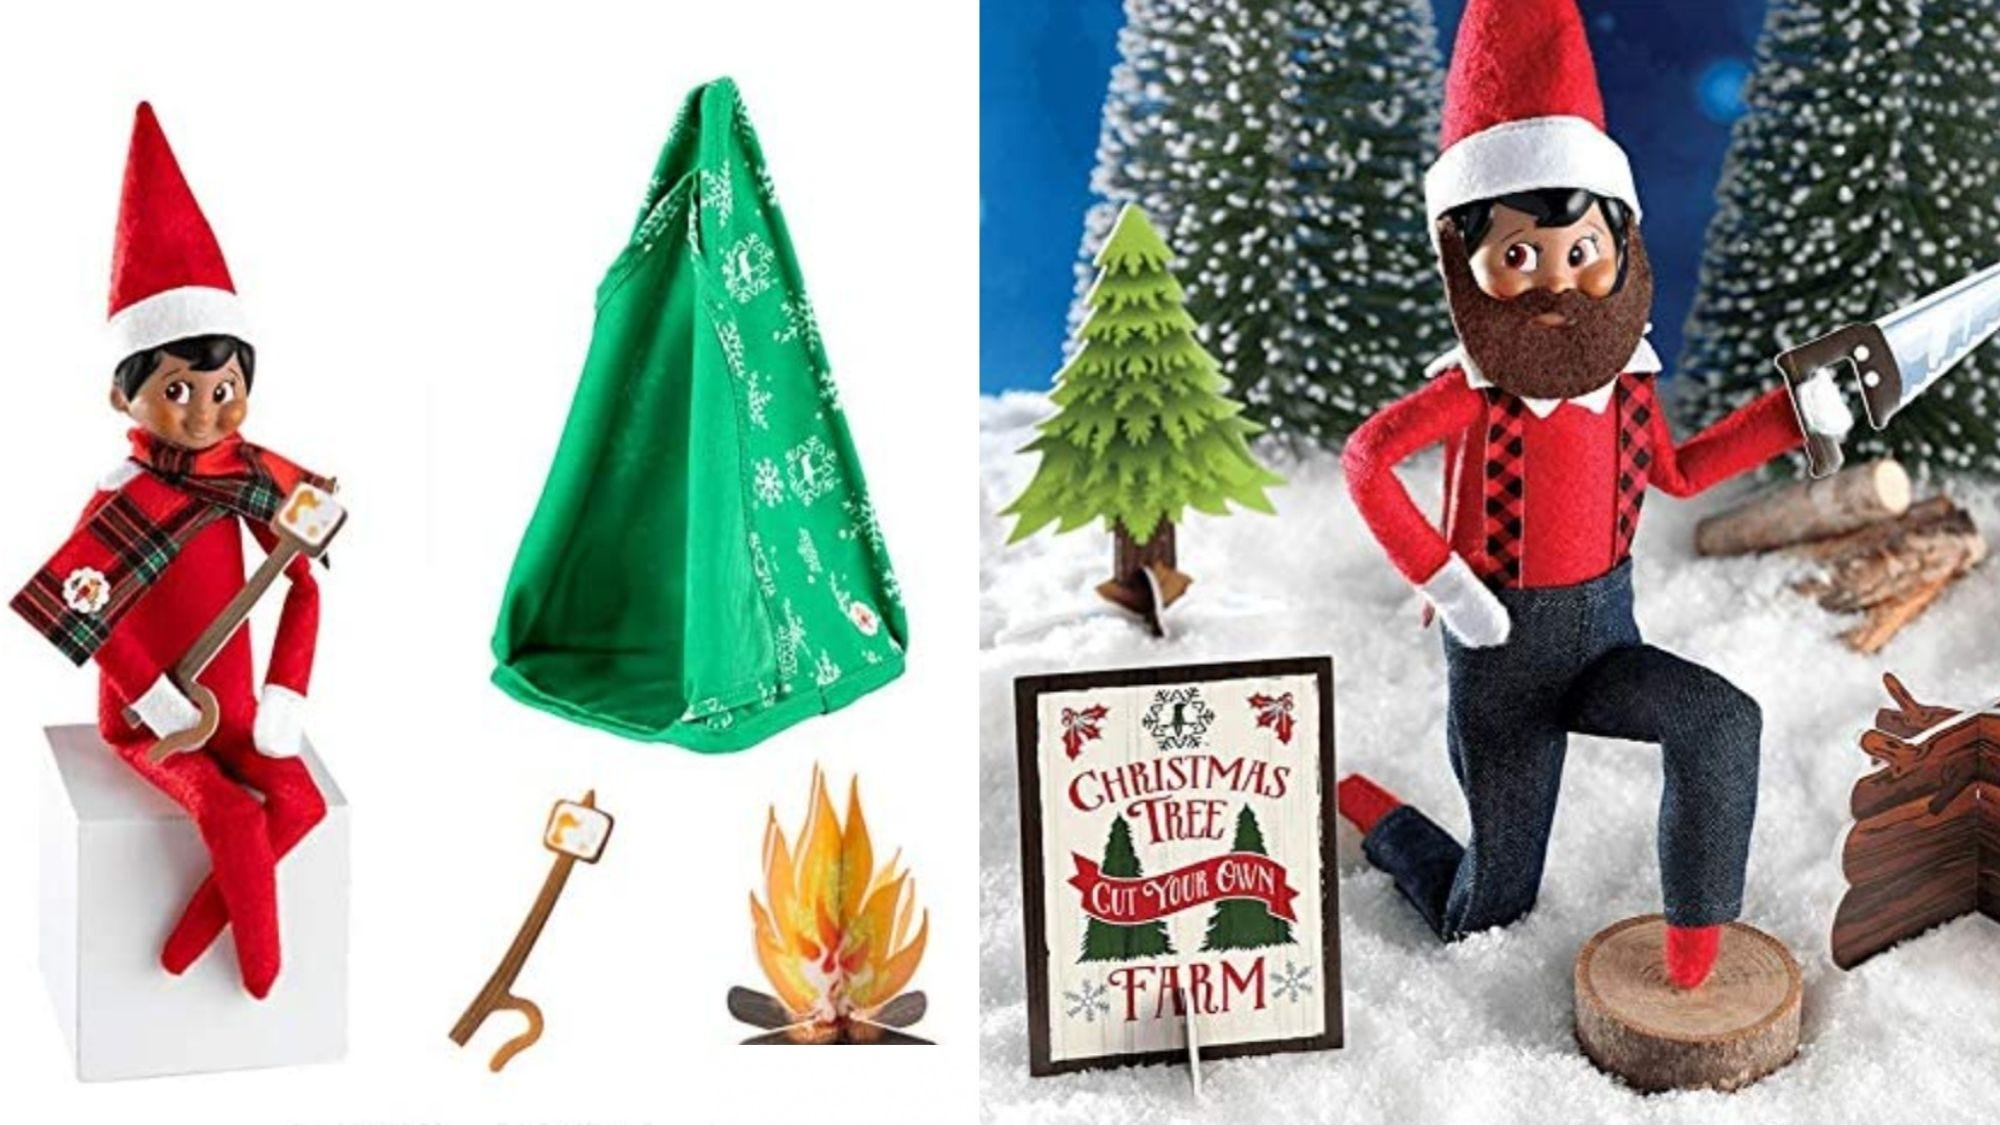 This set even comes with a beard, for the manly elf.